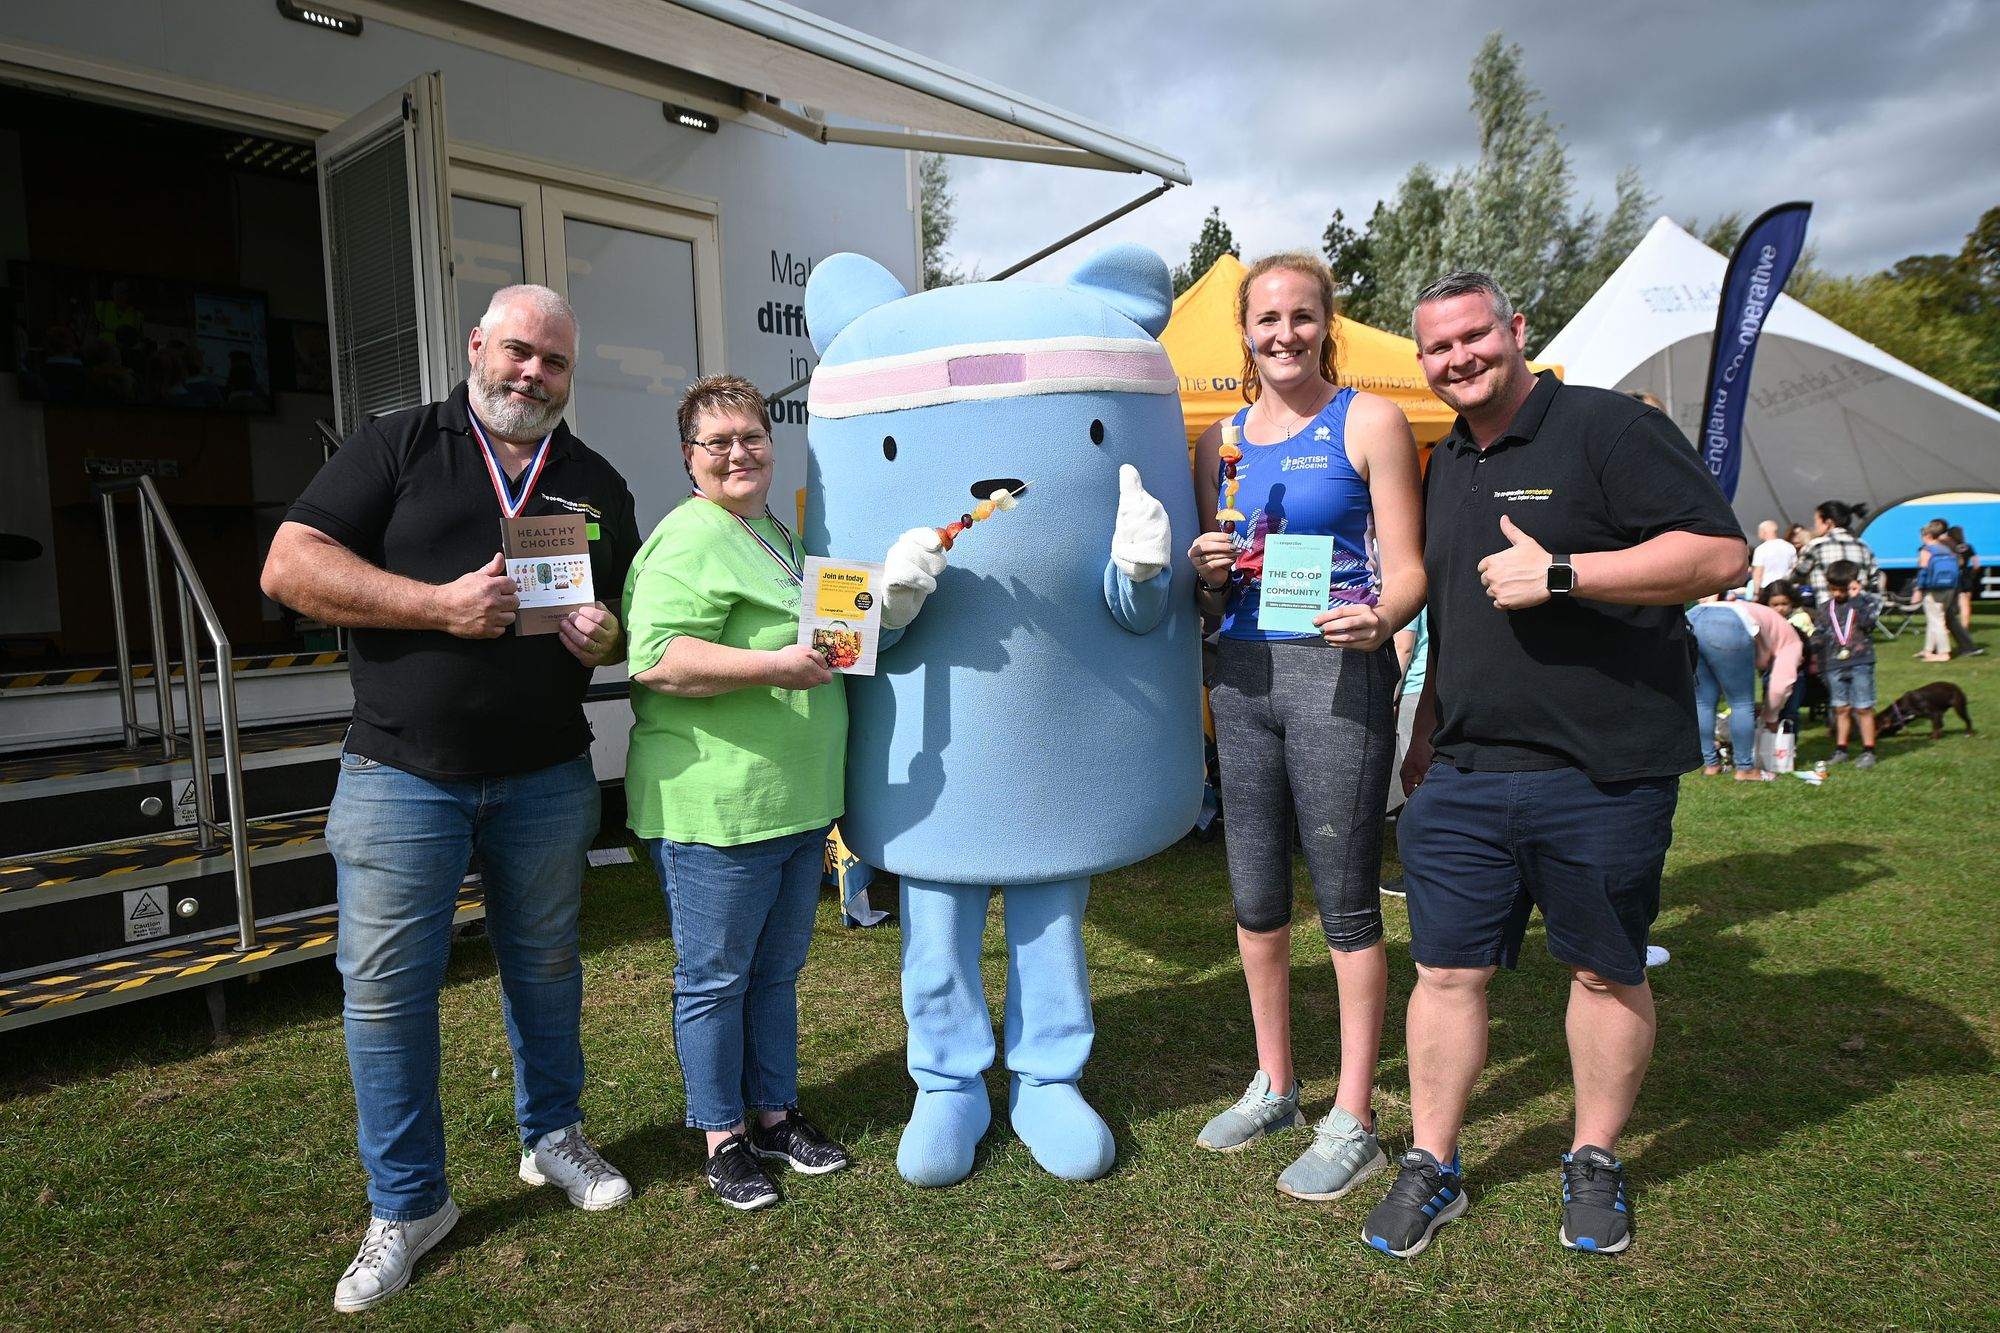 A weekend of Fun and Fruit at the Lichfield Community Games